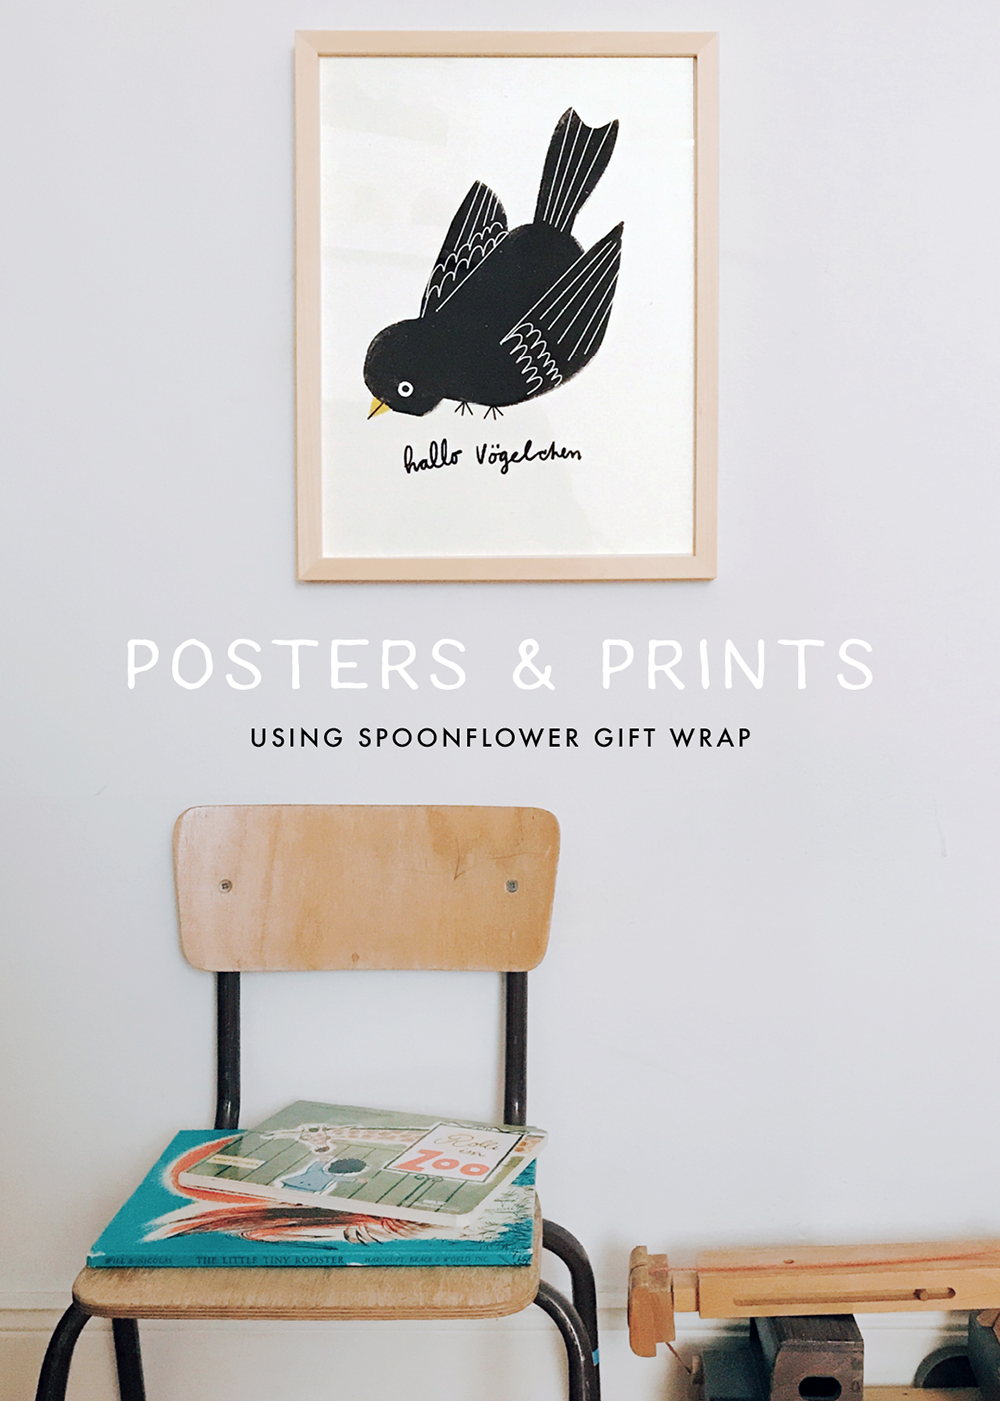 Posters and prints using Spooonflower gift wrap | Spoonflower Blog